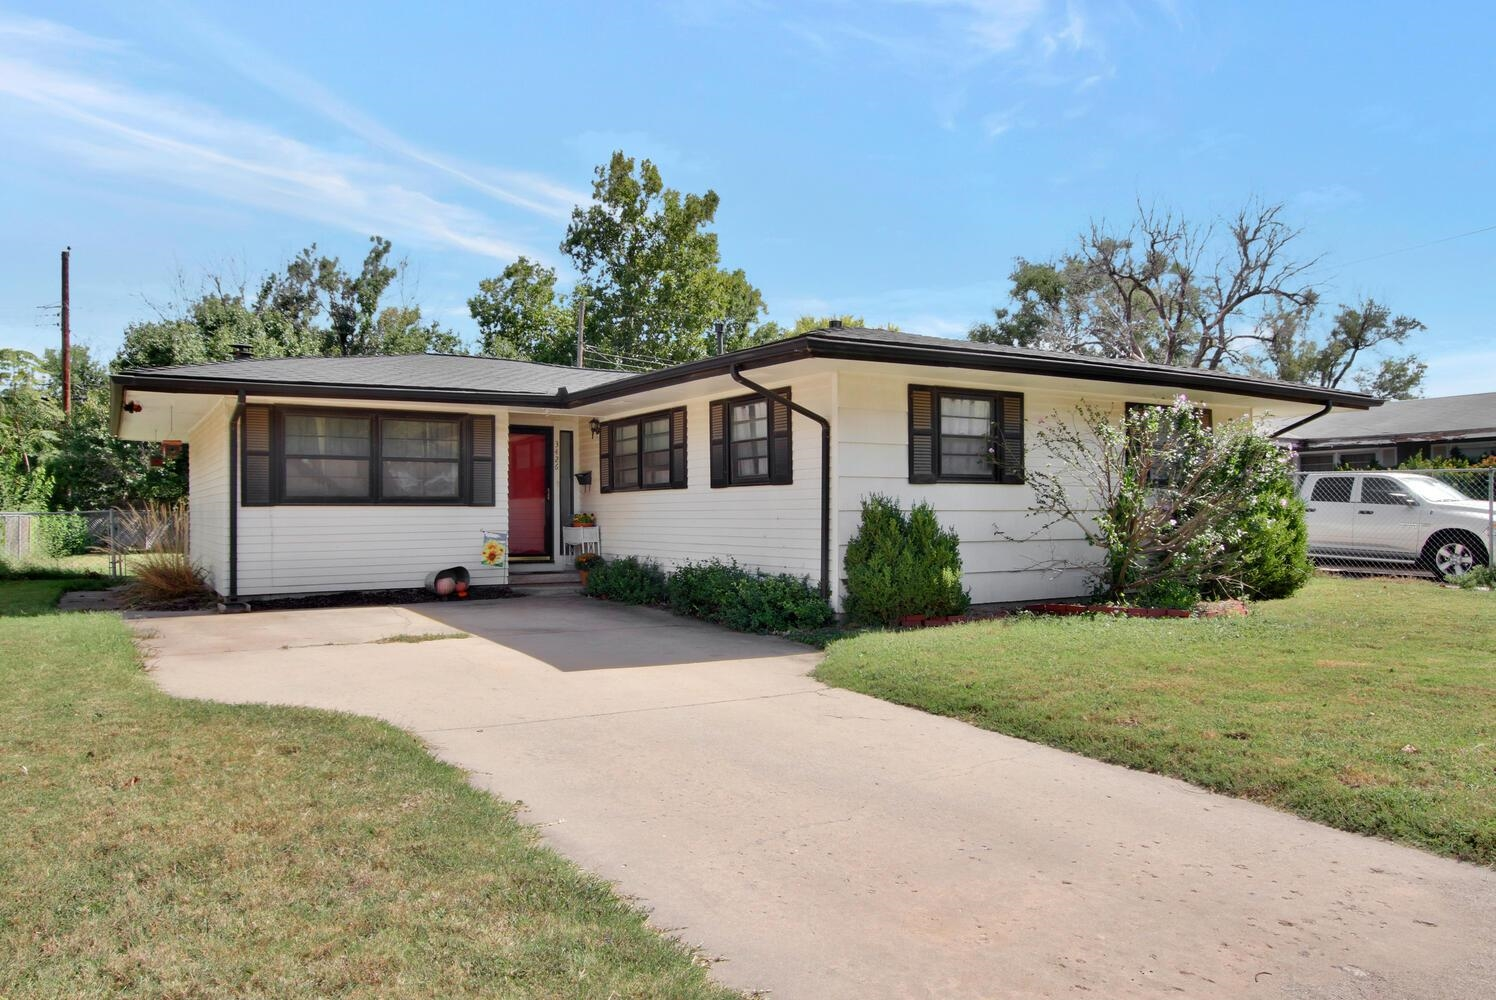 Great 3 bedroom 1.5 bath ranch located in an established neighborhood with many mature trees. Featur